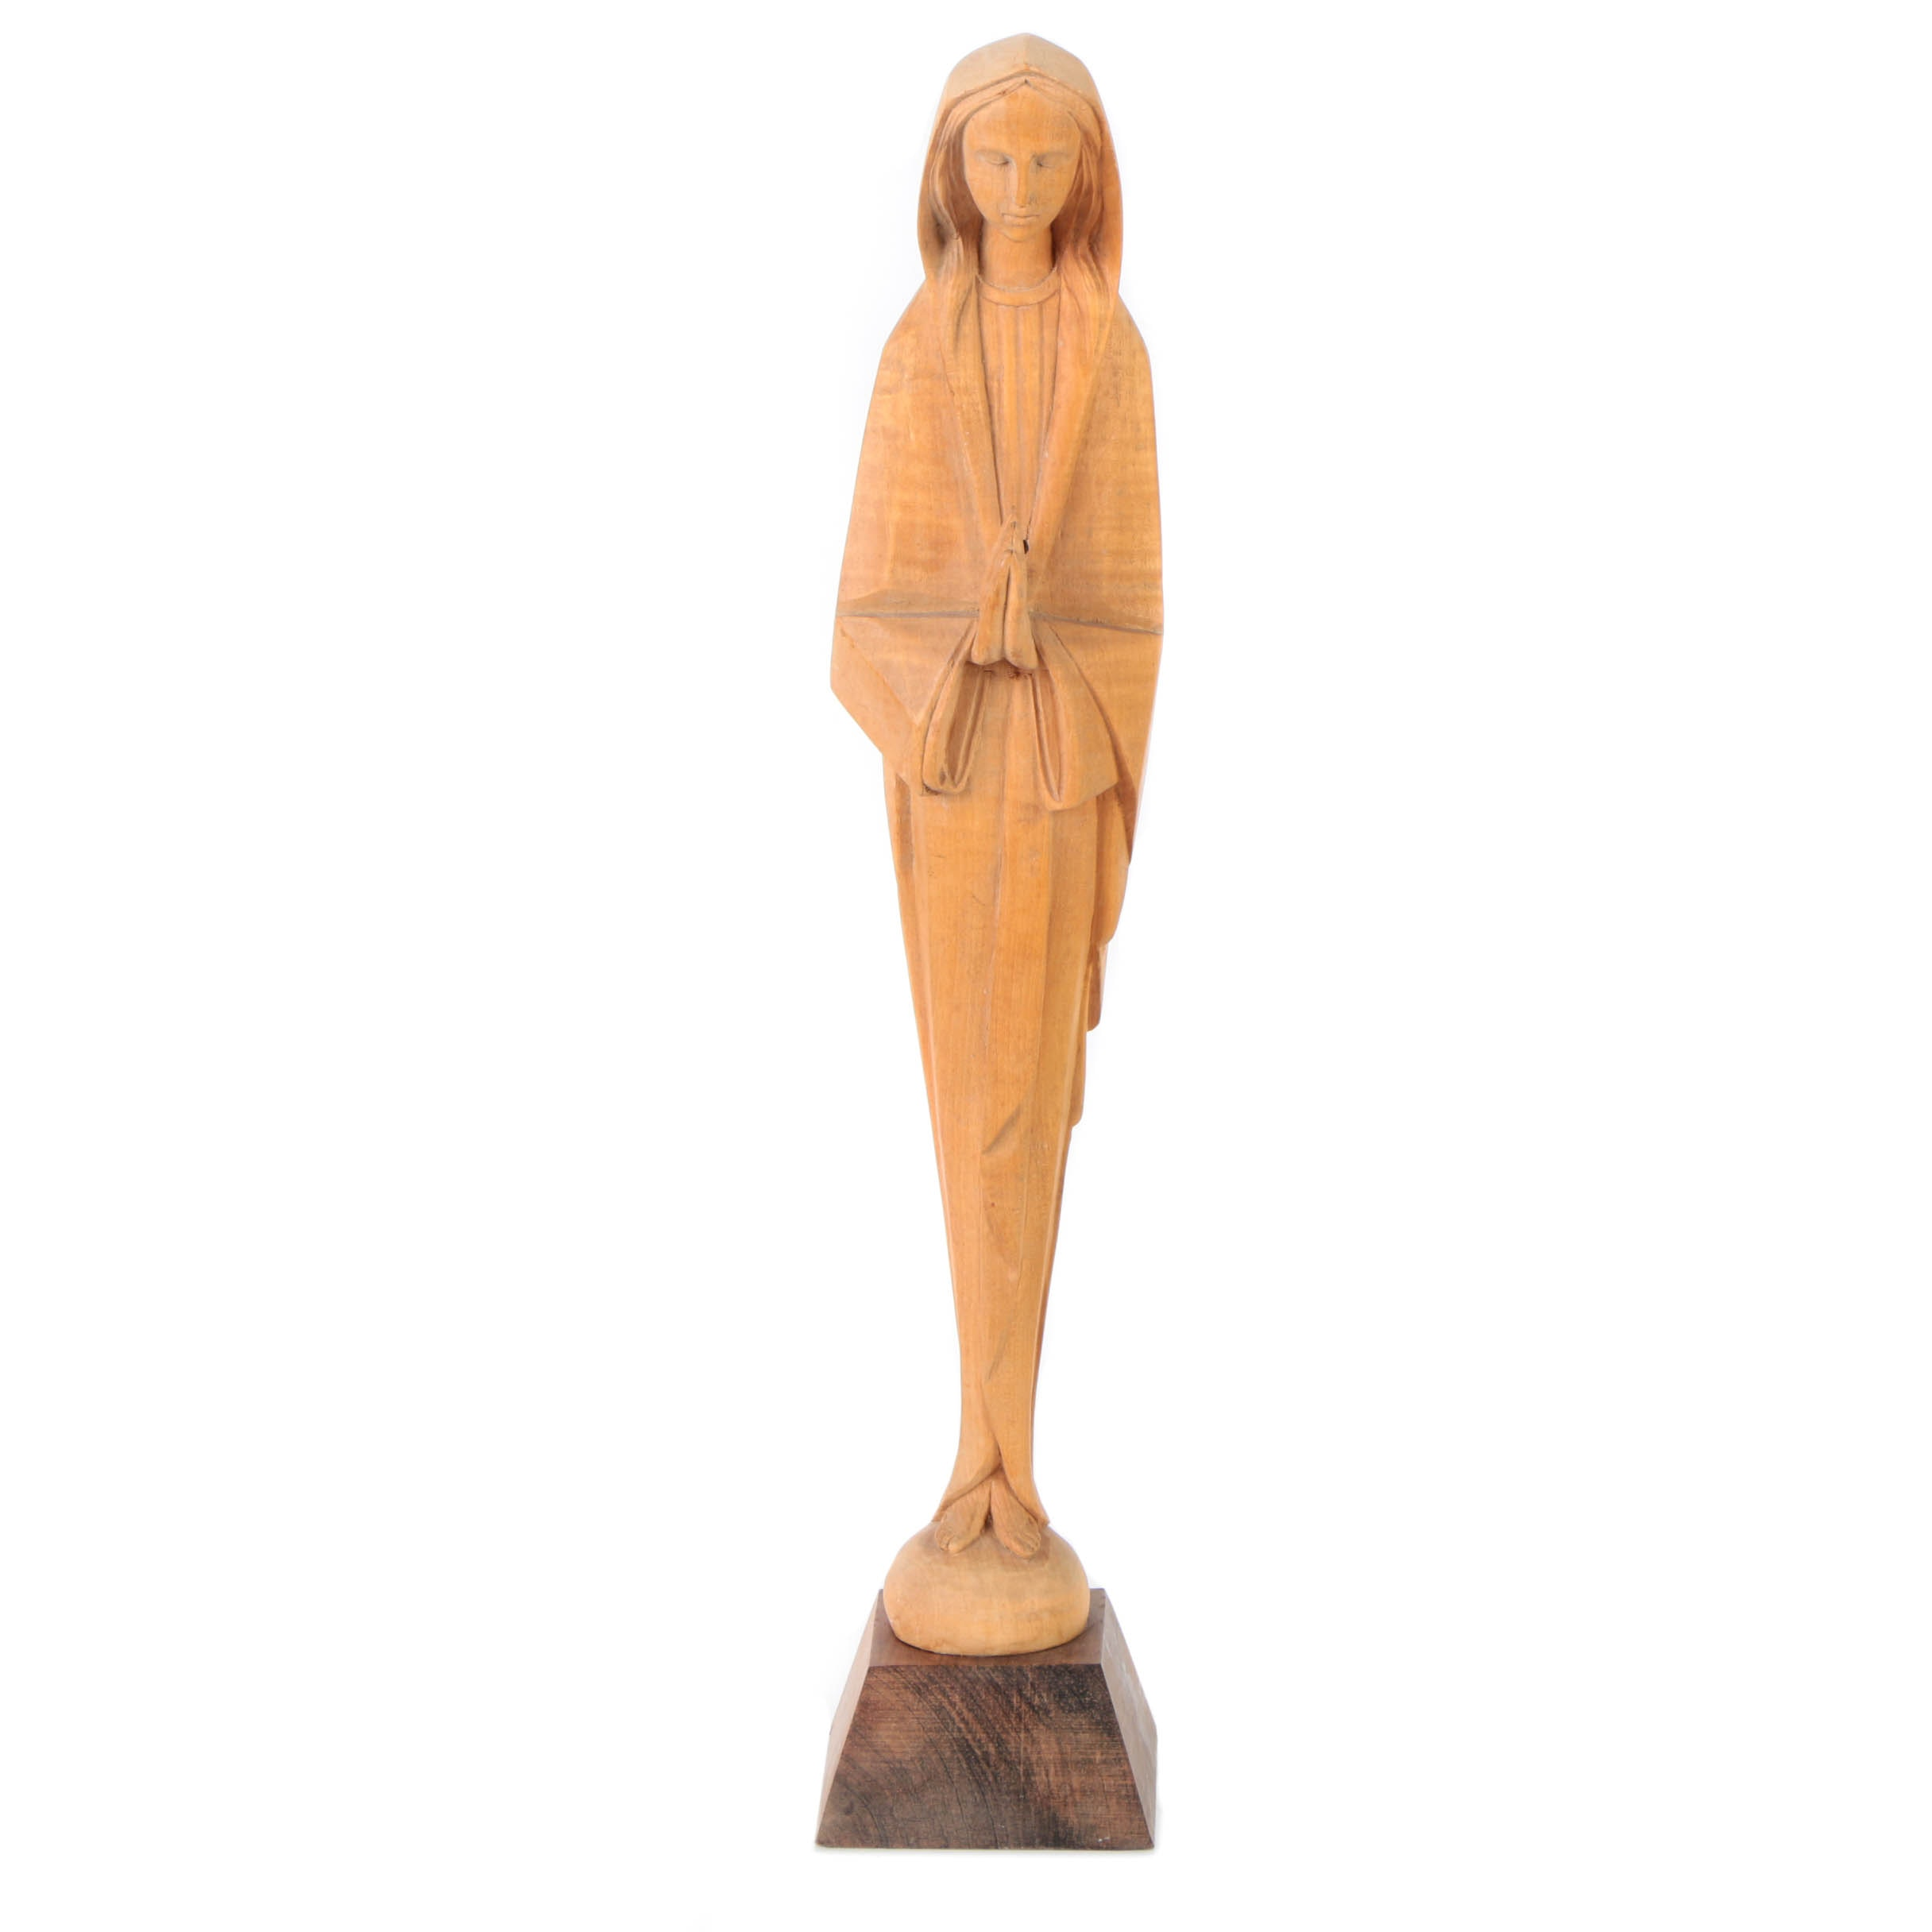 Carved Wood Sculpture of Woman in Prayer